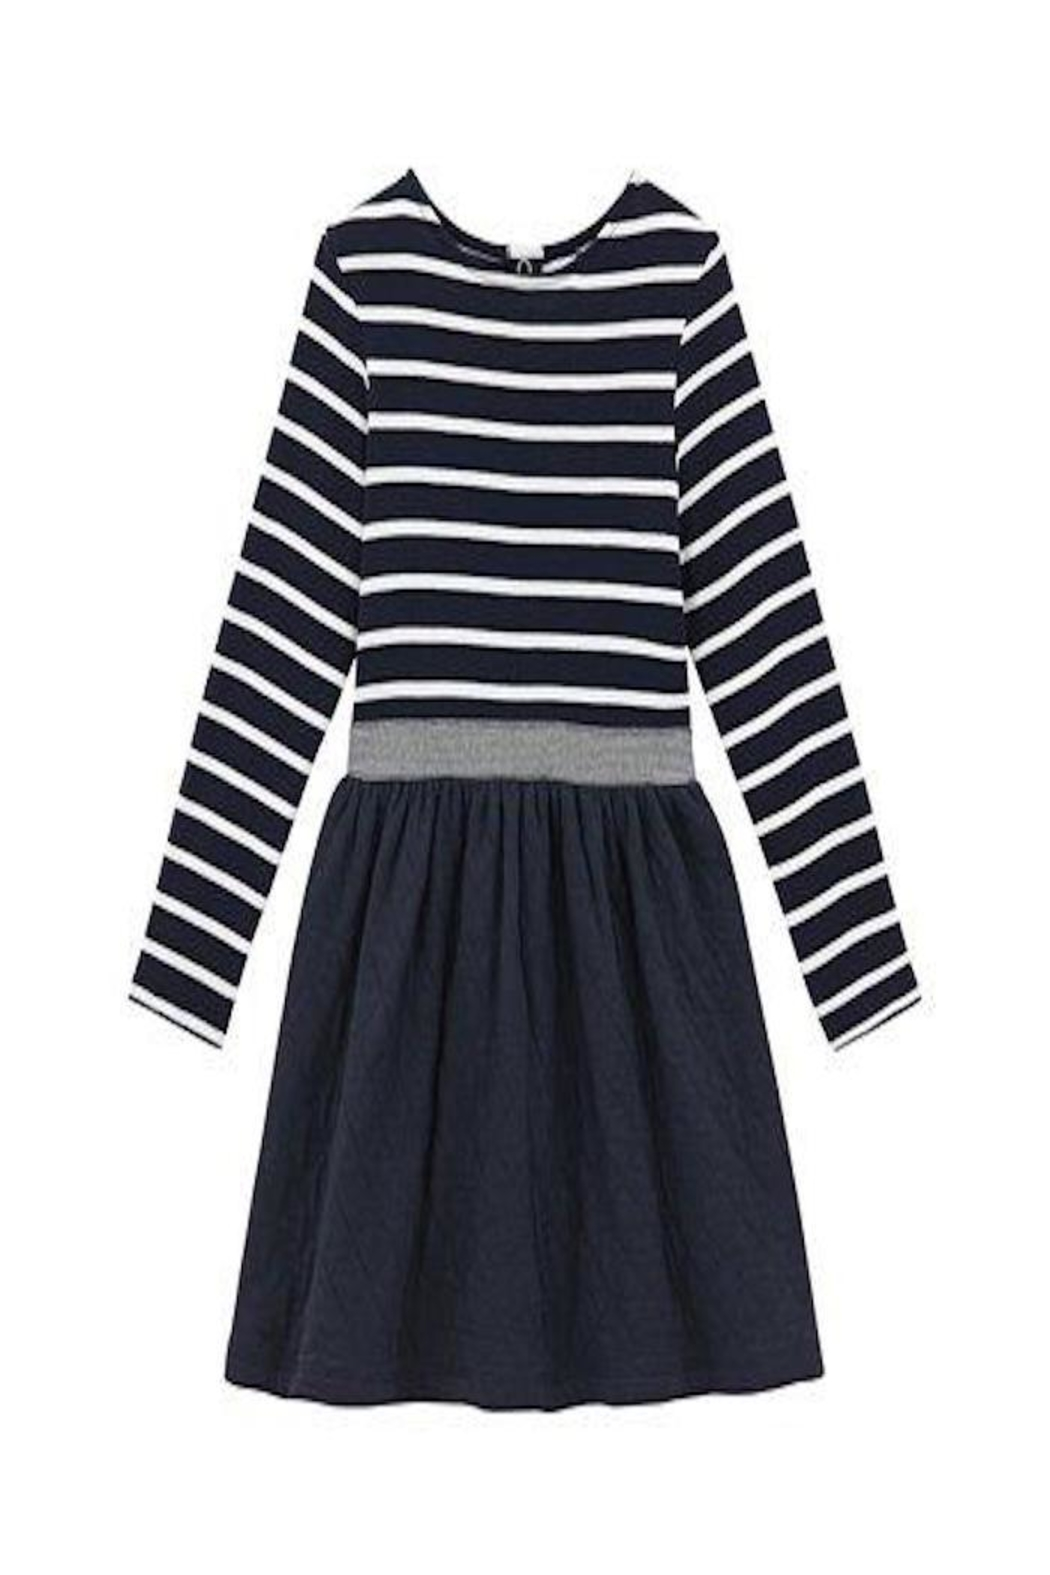 petit bateau Navy Striped Dress - Main Image